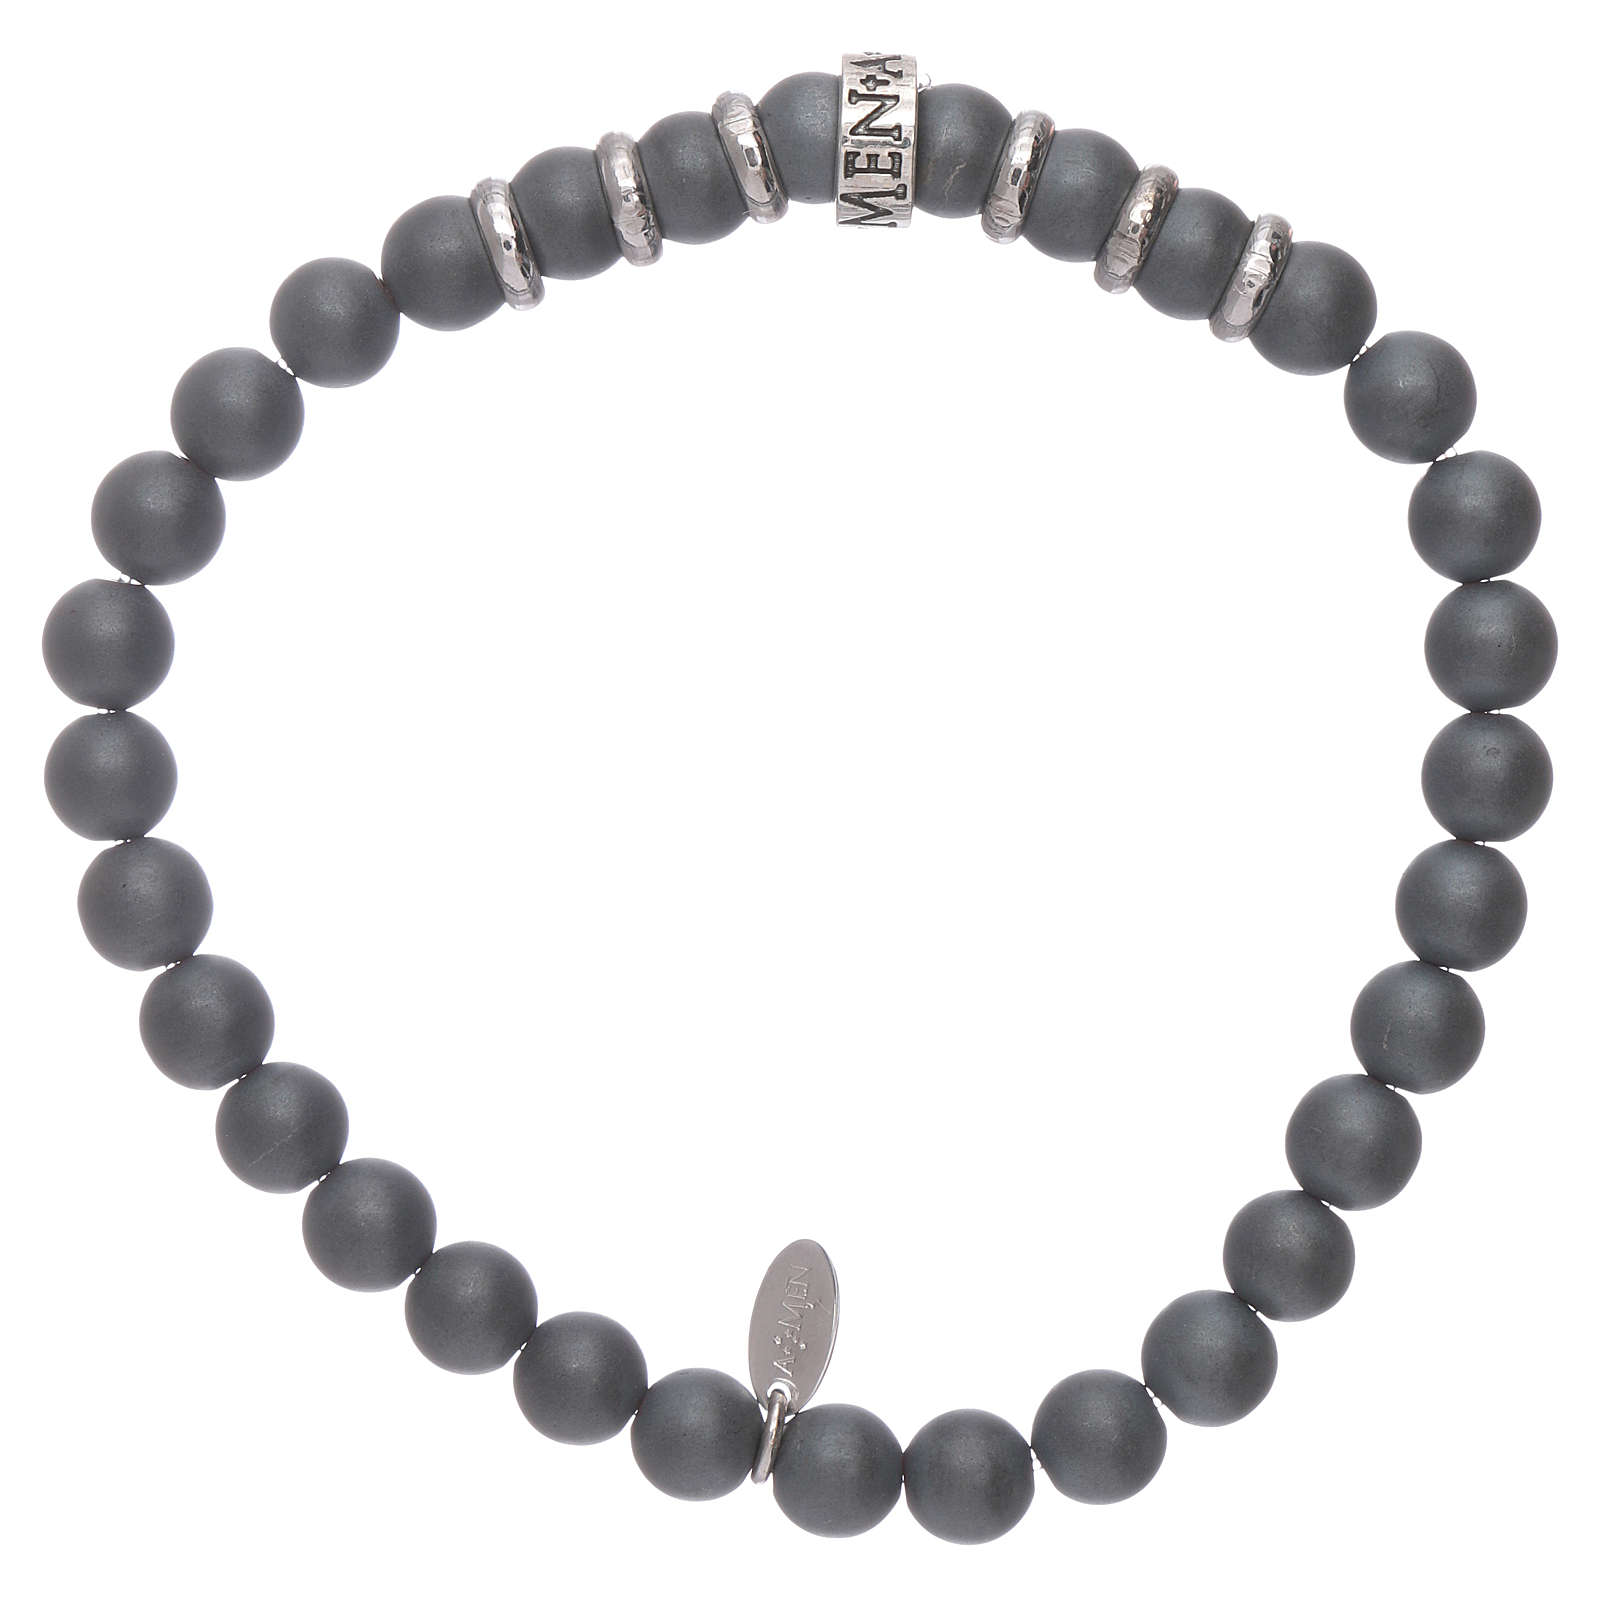 AMEN 925 sterling silver bracelet with 5 mm hematite spheres 4